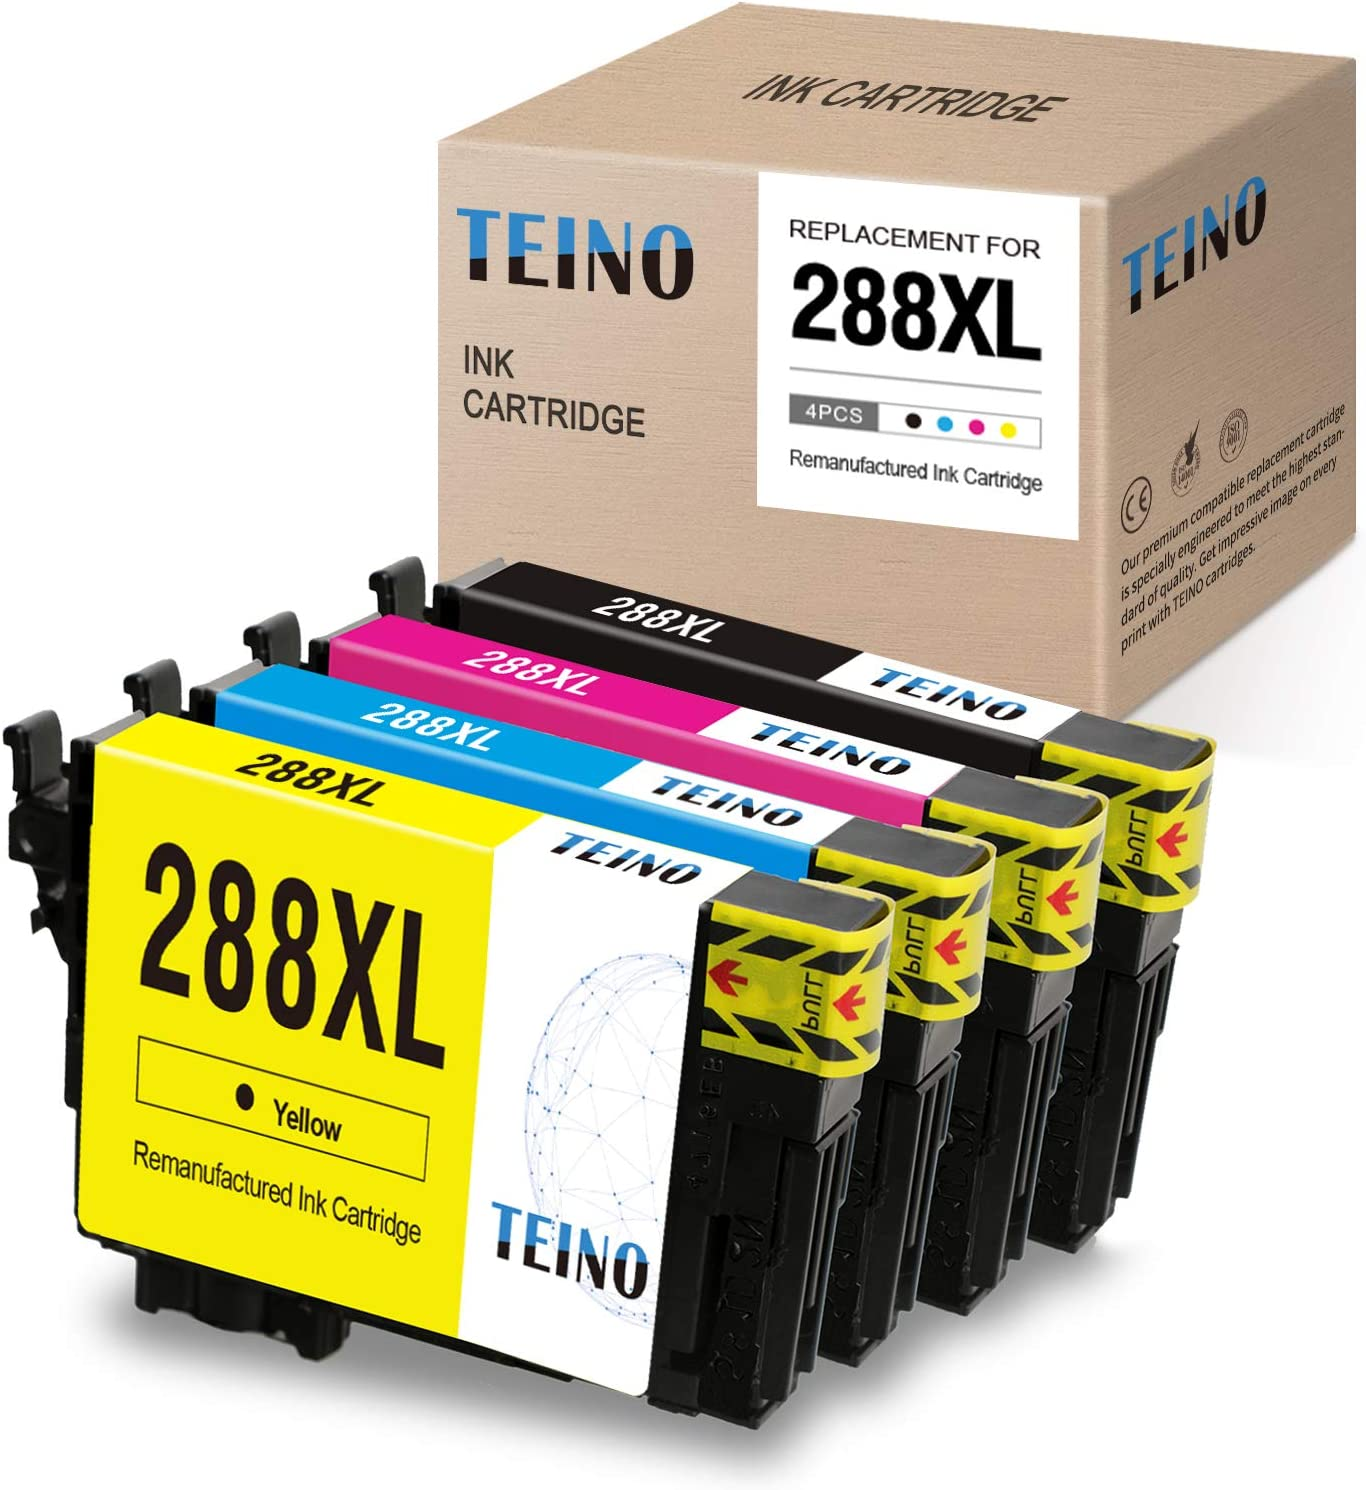 TEINO Remanufactured Ink Cartridges Replacement for Epson 288 XL 288XL use with Epson Expression Home XP-340 XP-440 XP-446 XP-430 (Black, Cyan, Magenta, Yellow, 4-Pack)